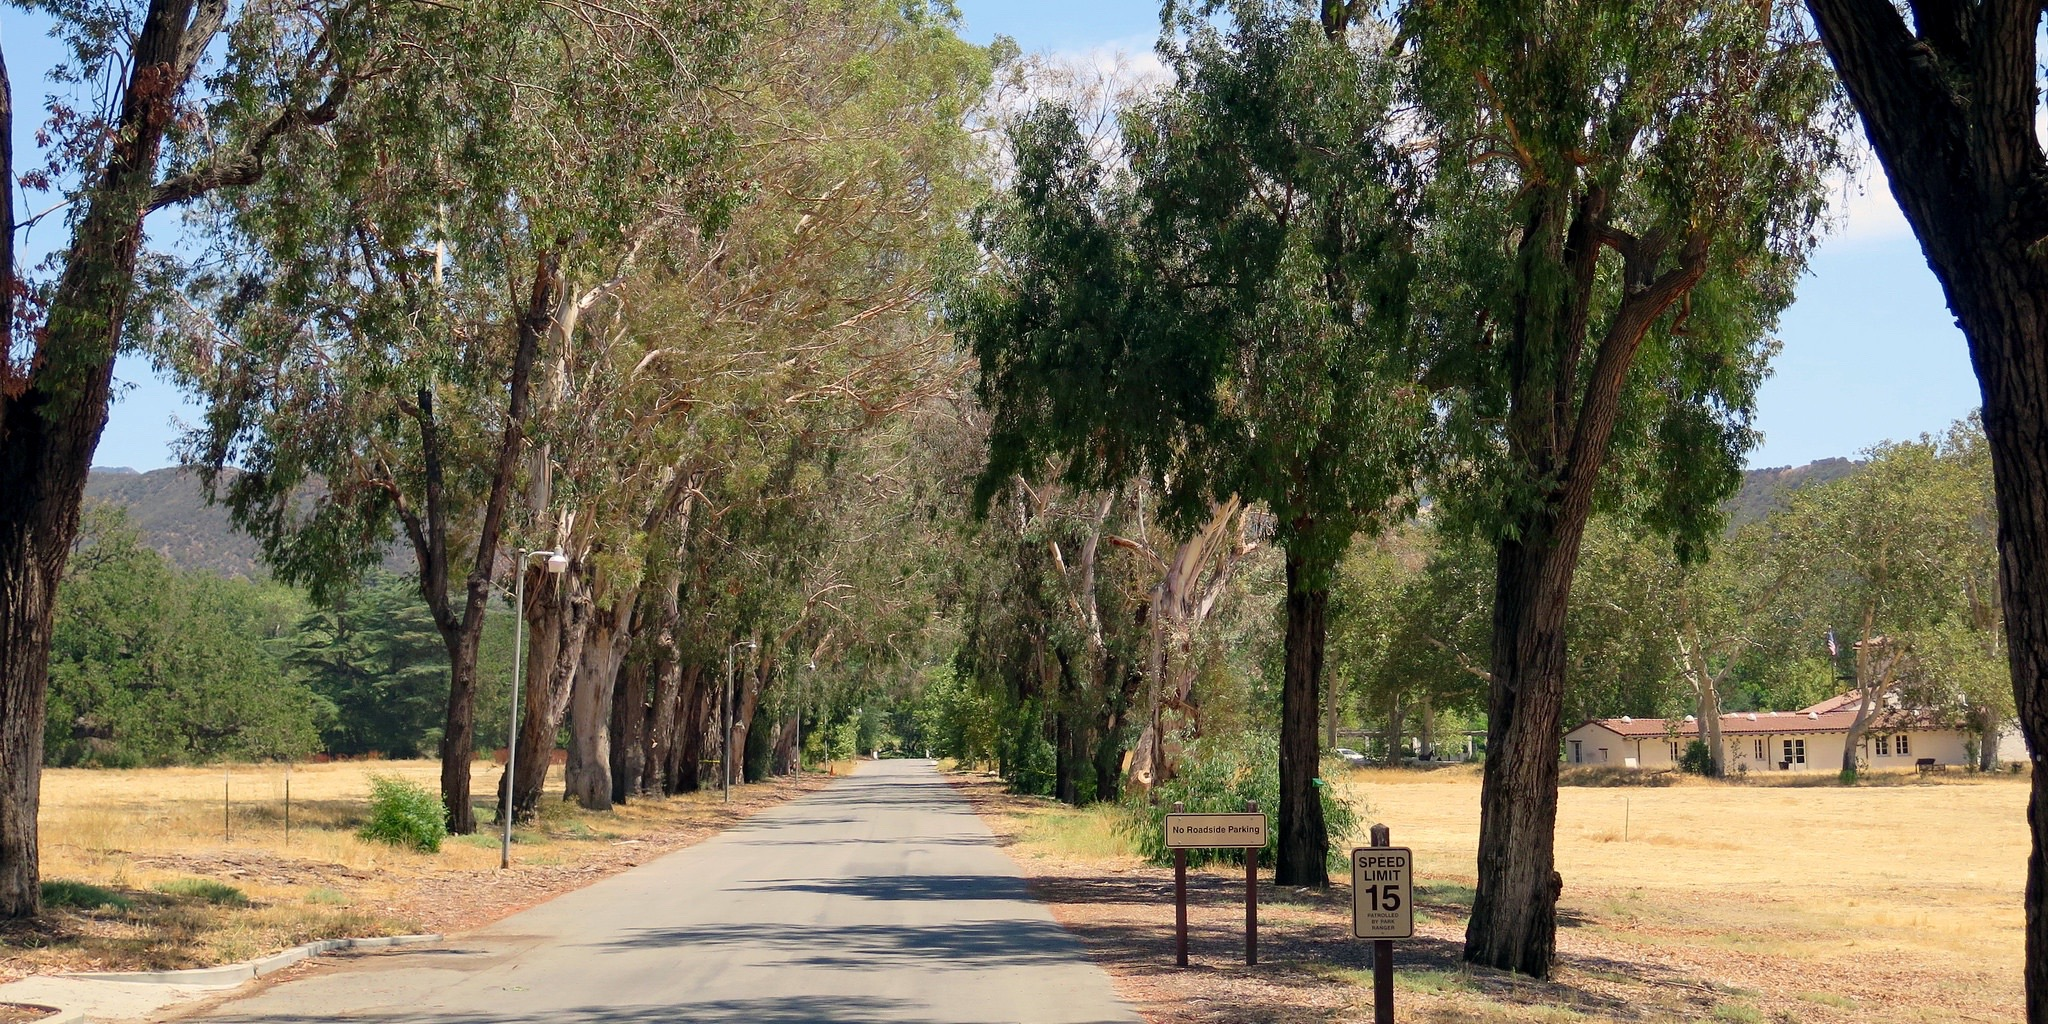 Drive on the beautiful driveway, under eucalyptus trees.